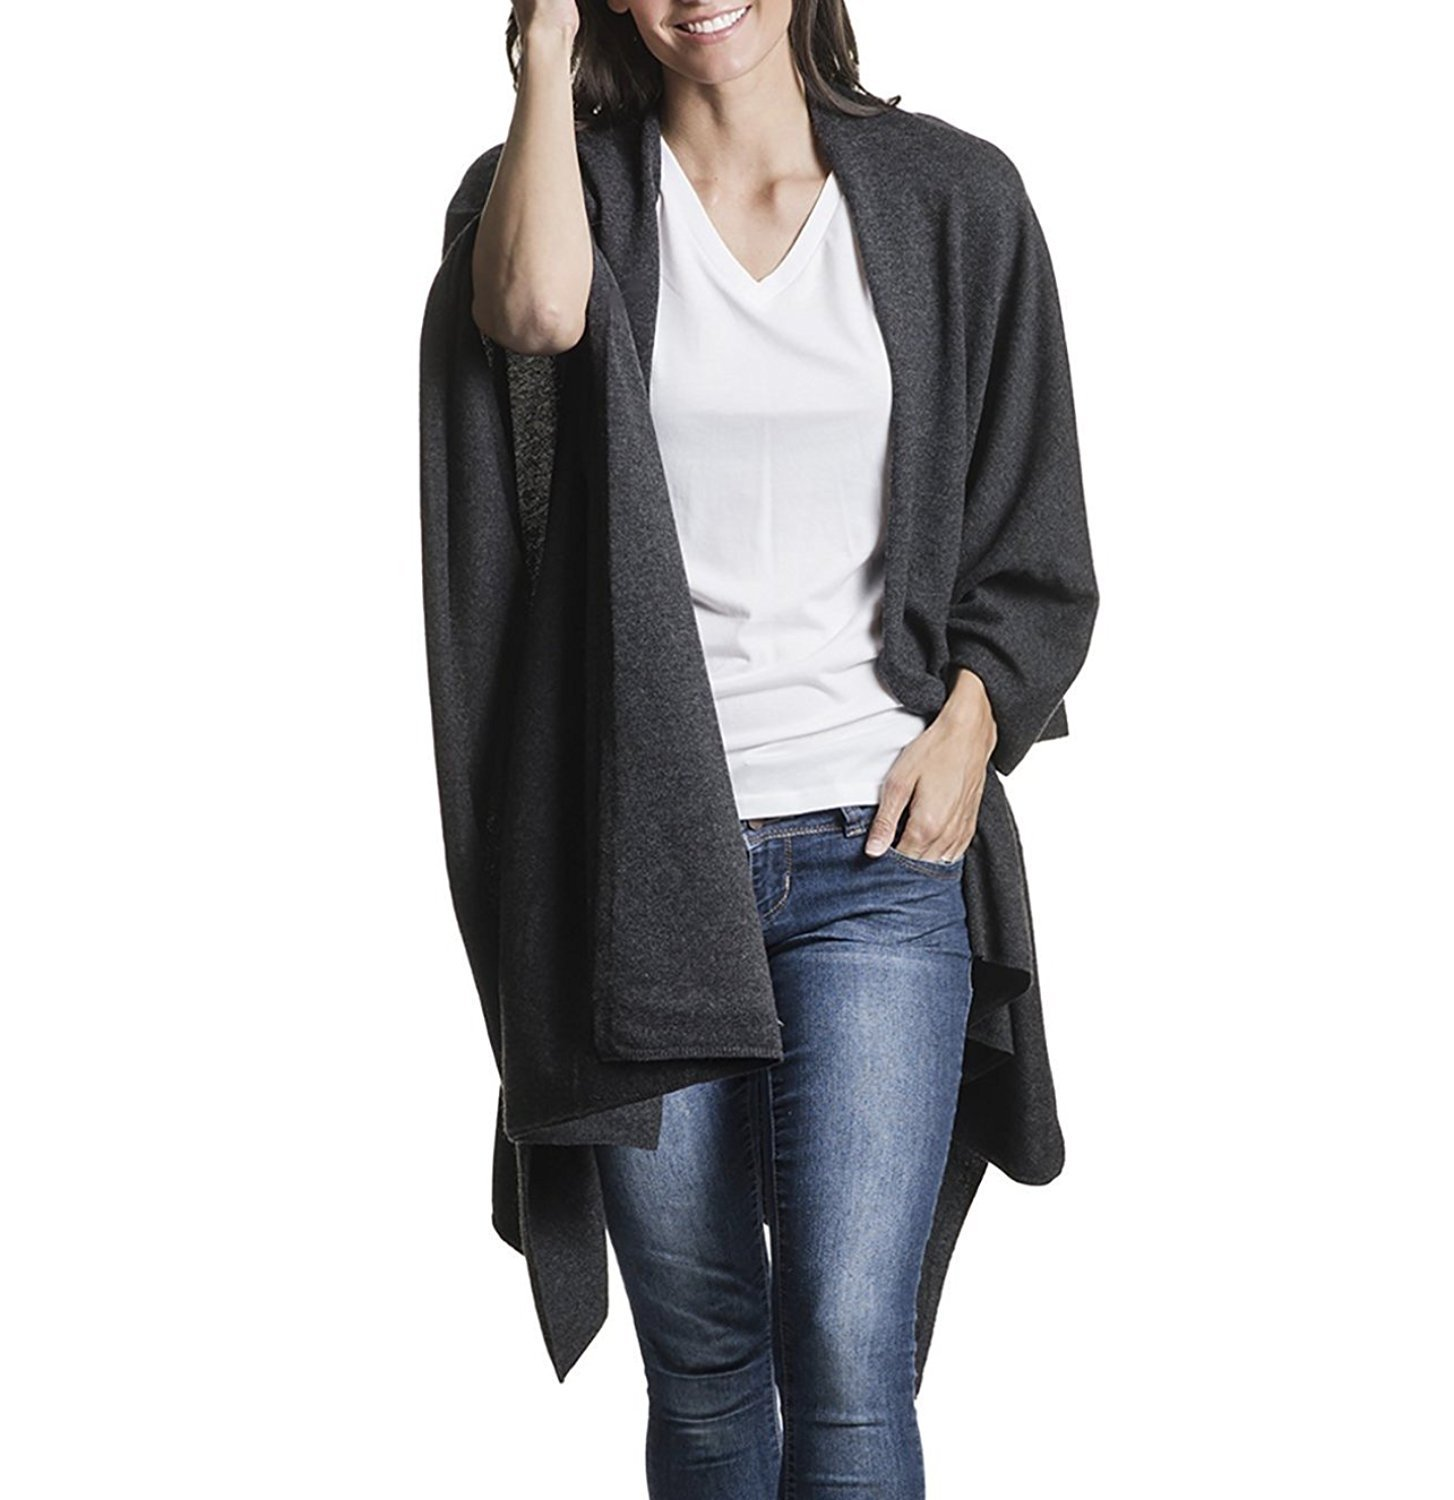 Mer Sea Cotton Cashmere Travel Wrap (Black) by Mersea